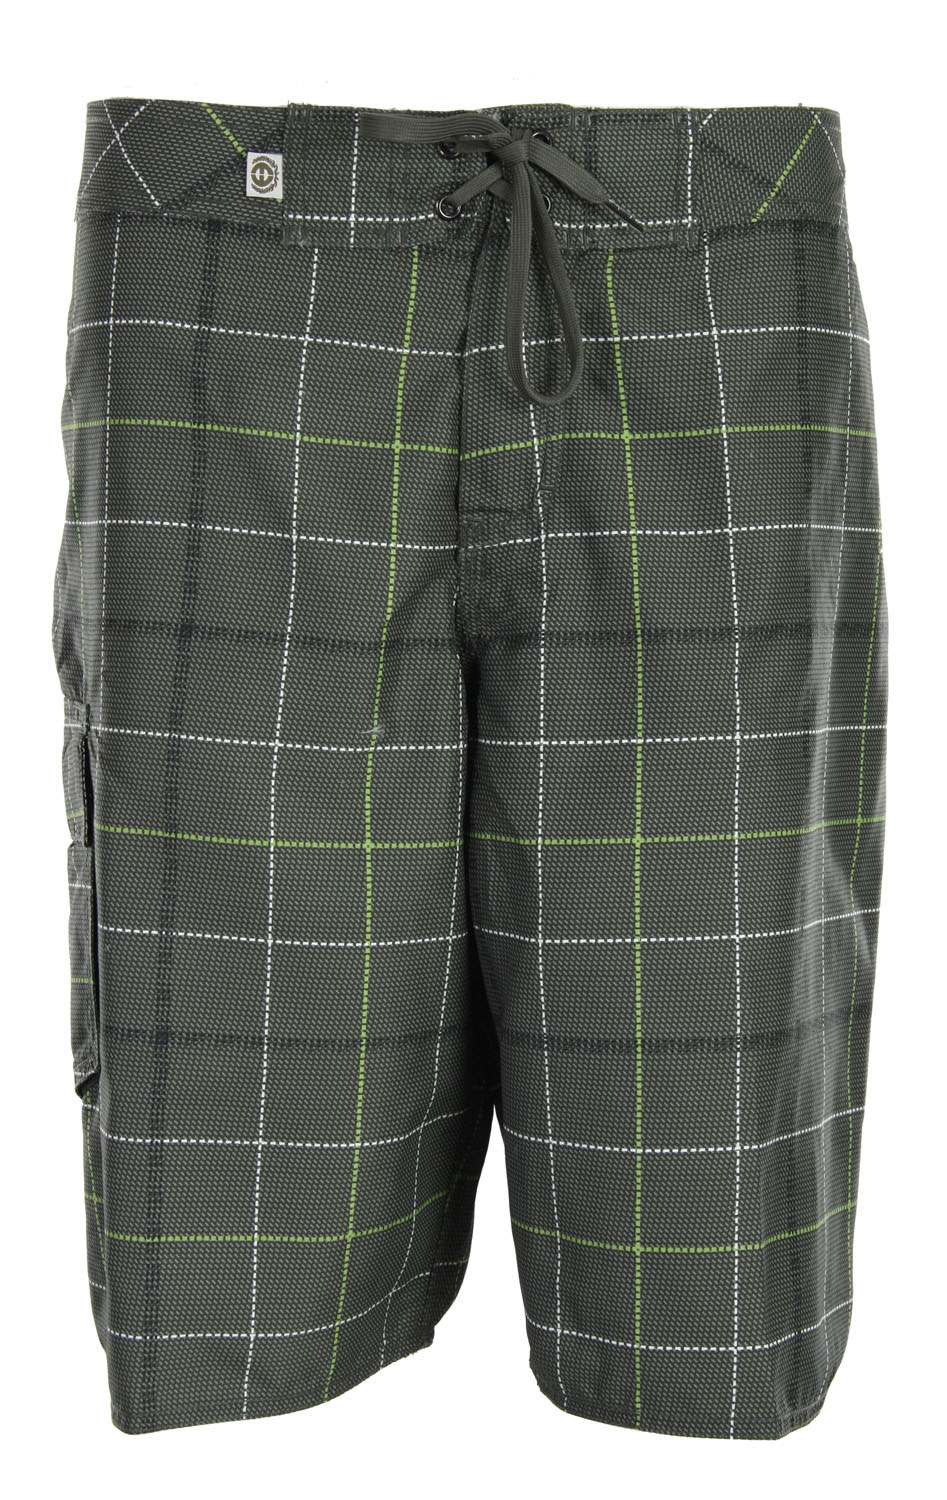 "Surf The Planet Earth Crawford Boardshorts features a casual plaid design all throughout. Featuring one single cargo pocket, it surely adds a bit of character to these shorts. Made with 100% recycled polyester, comfort is guaranteed. Super ideal for daytime wear, rock these to the beach or head out to lunch with a friend. They're absolutely perfect for summer.Key Features of The Planet Earth Crawford Boardshorts: 100% Recycled Polyester PET Single Cargo Pocket Outseam: 21"" - $16.95"